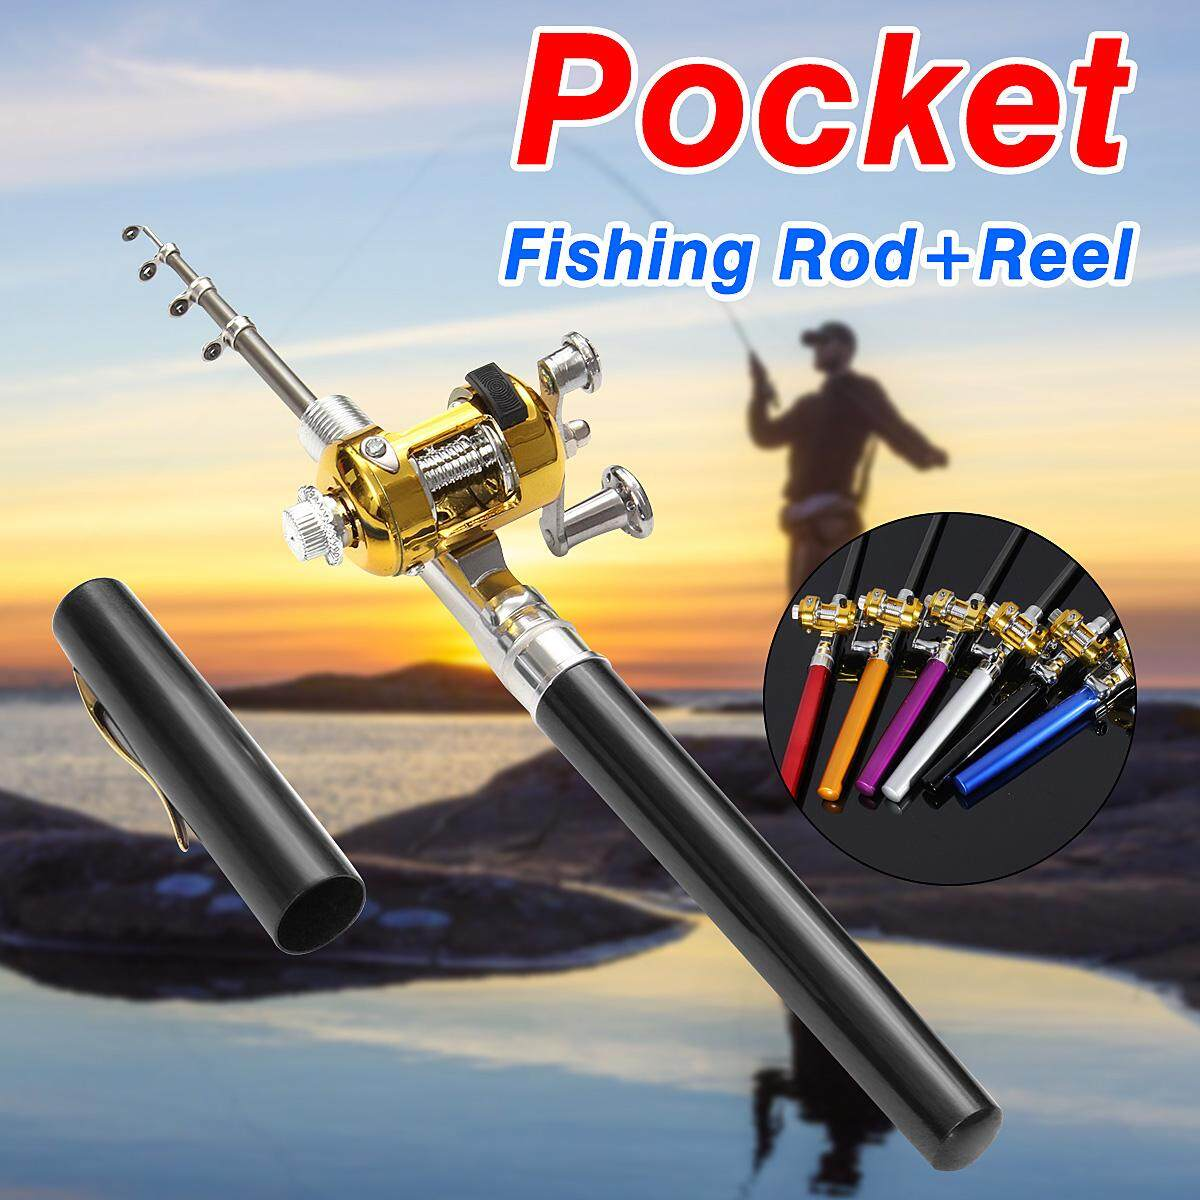 2 PCS Mini Portable Pocket Fish Pen Shape Aluminum Alloy Fishing Rod Pole Reel Black -